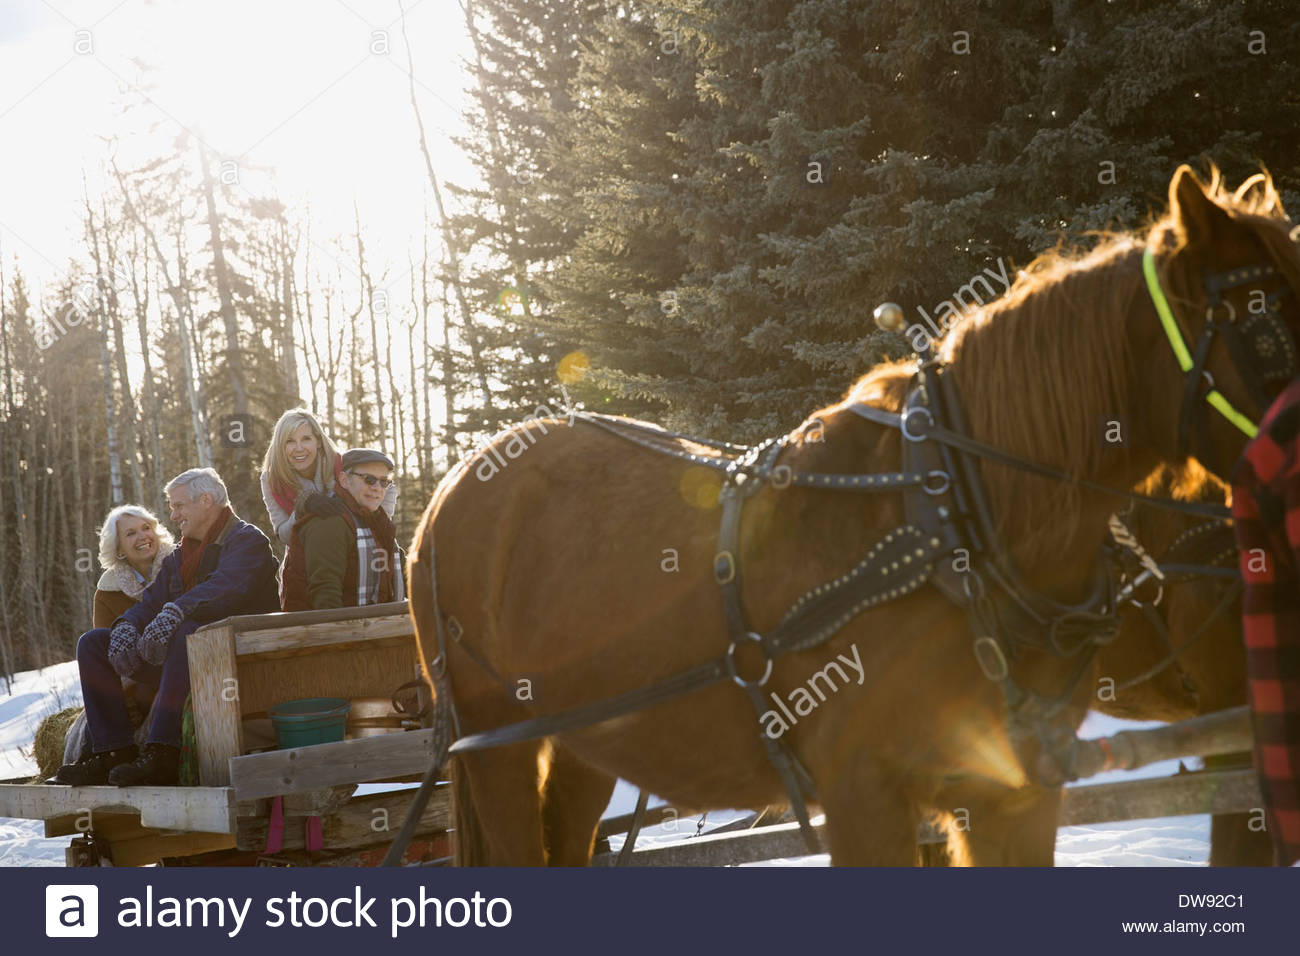 Friends riding on horse-drawn sleigh Stock Photo